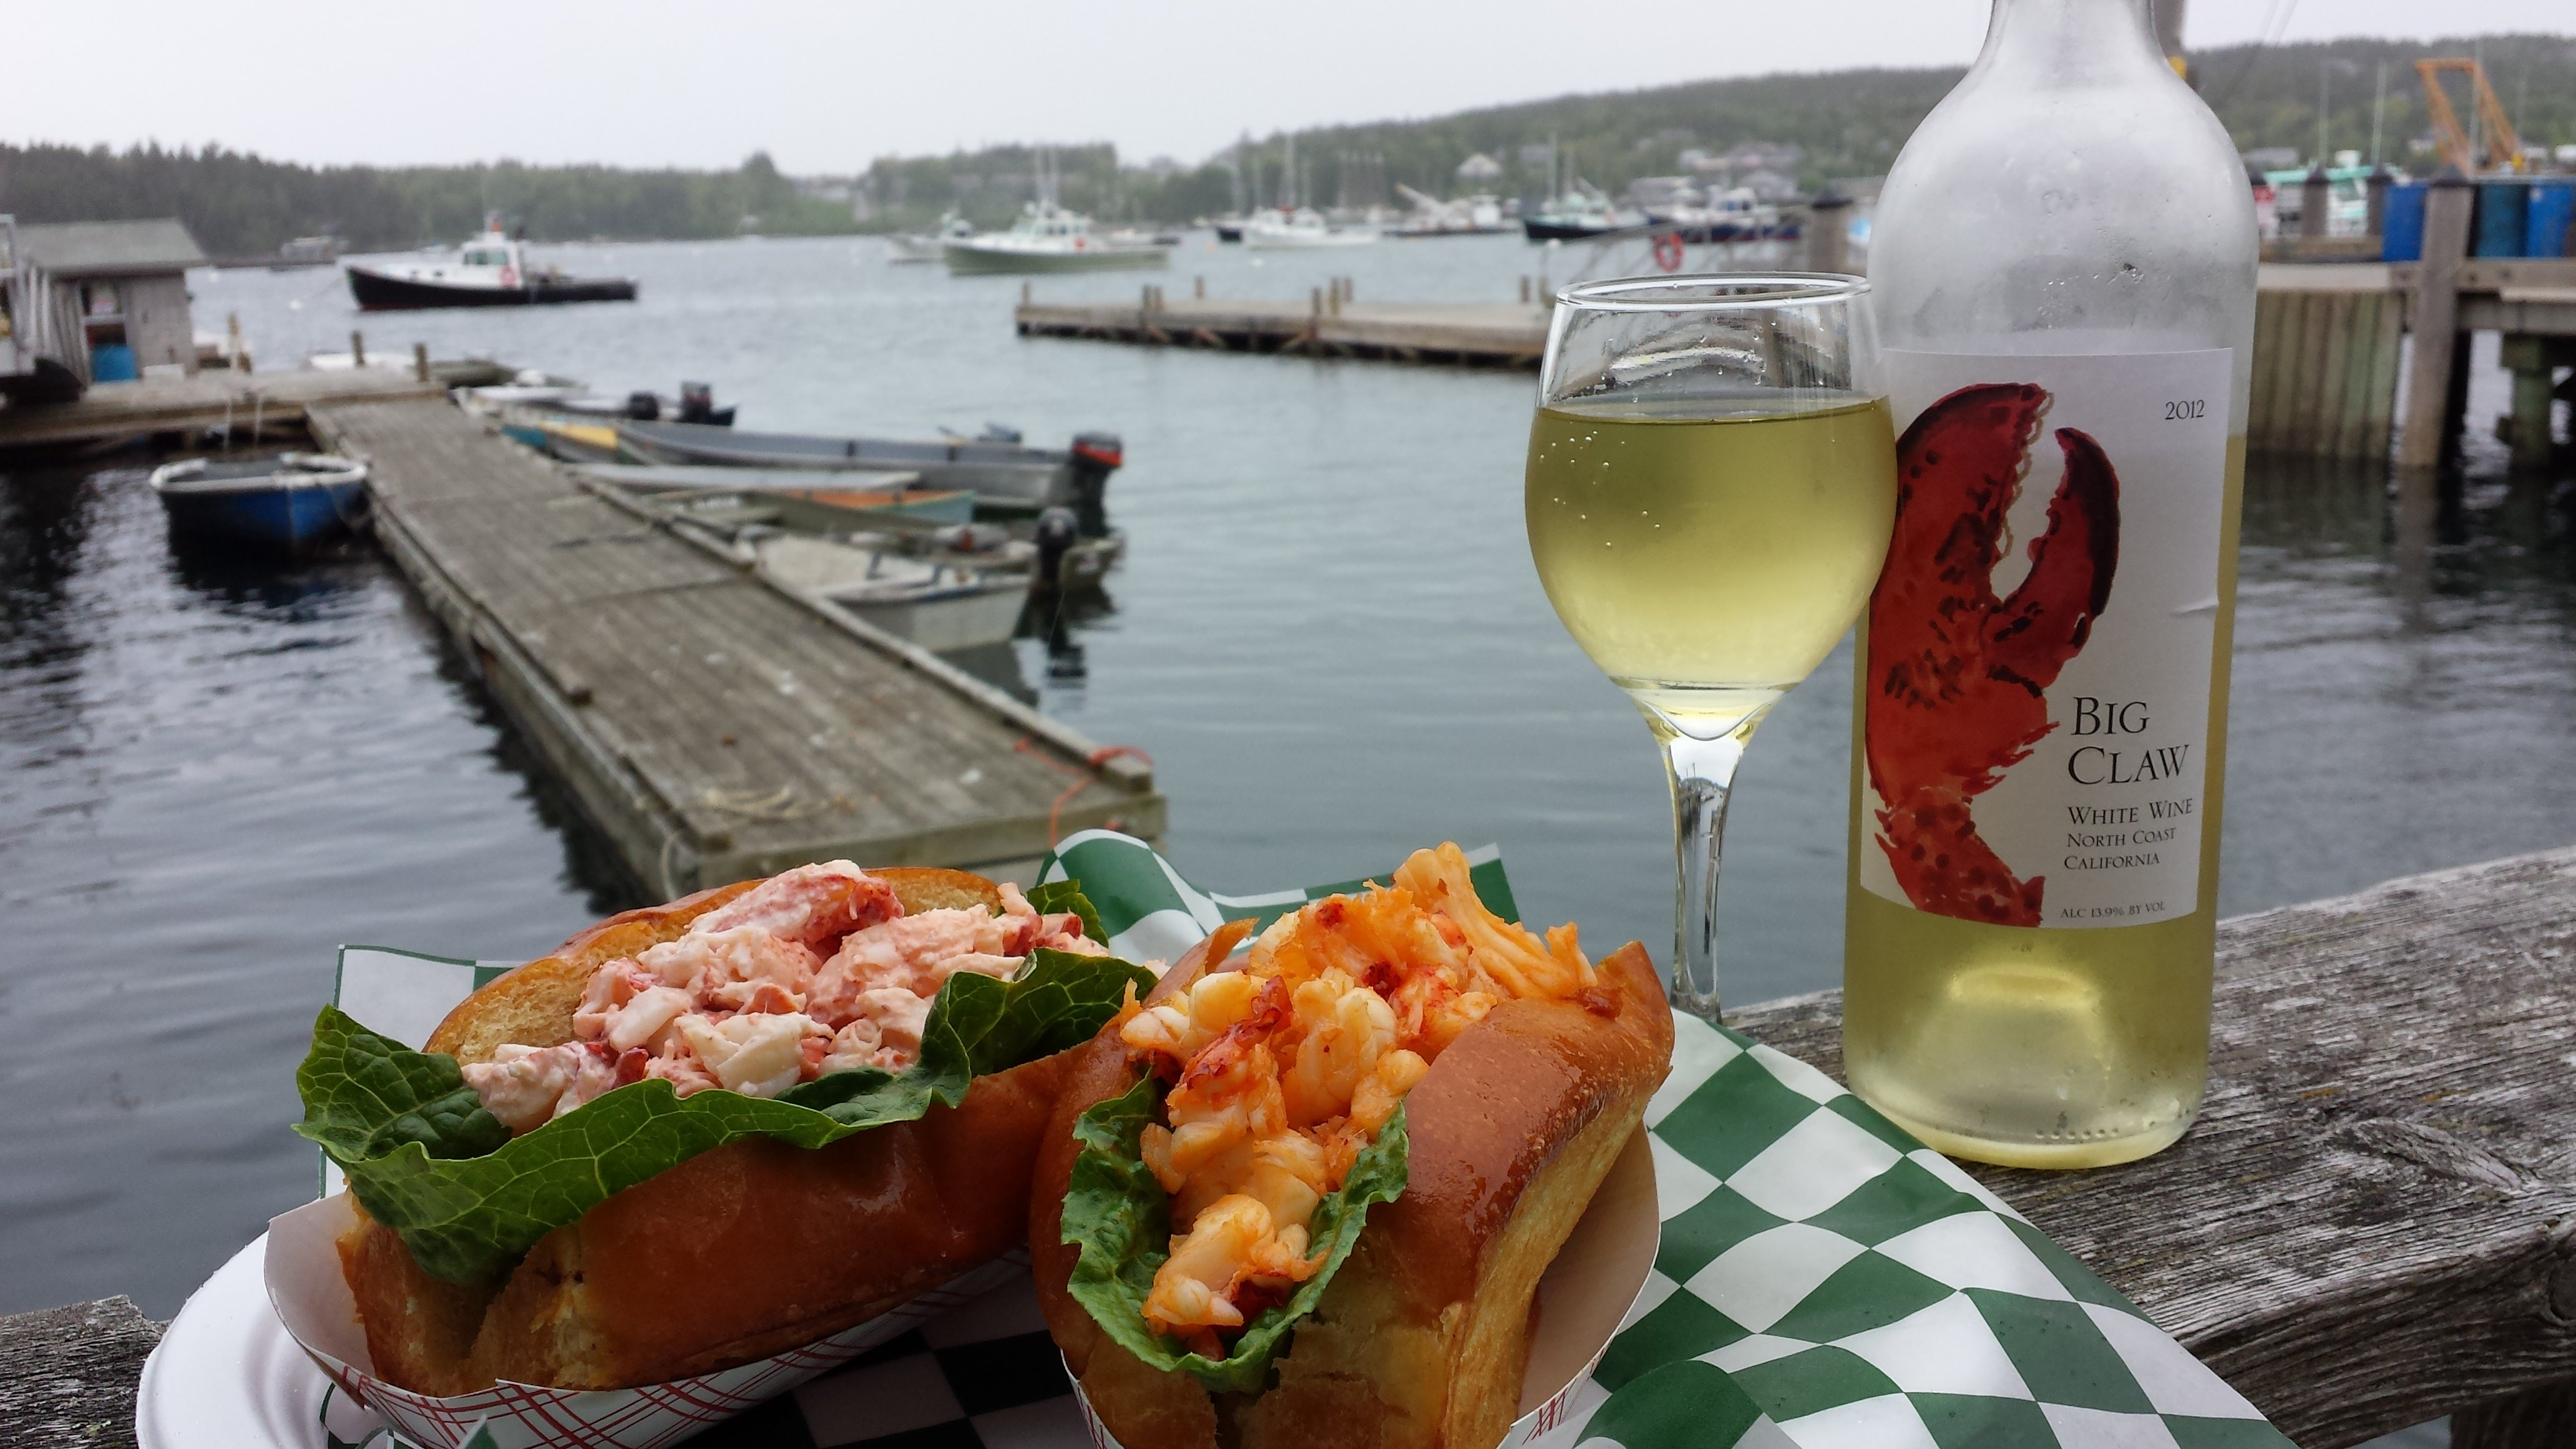 The choice is yours! Pick from our classic or traditional lobster rolls.